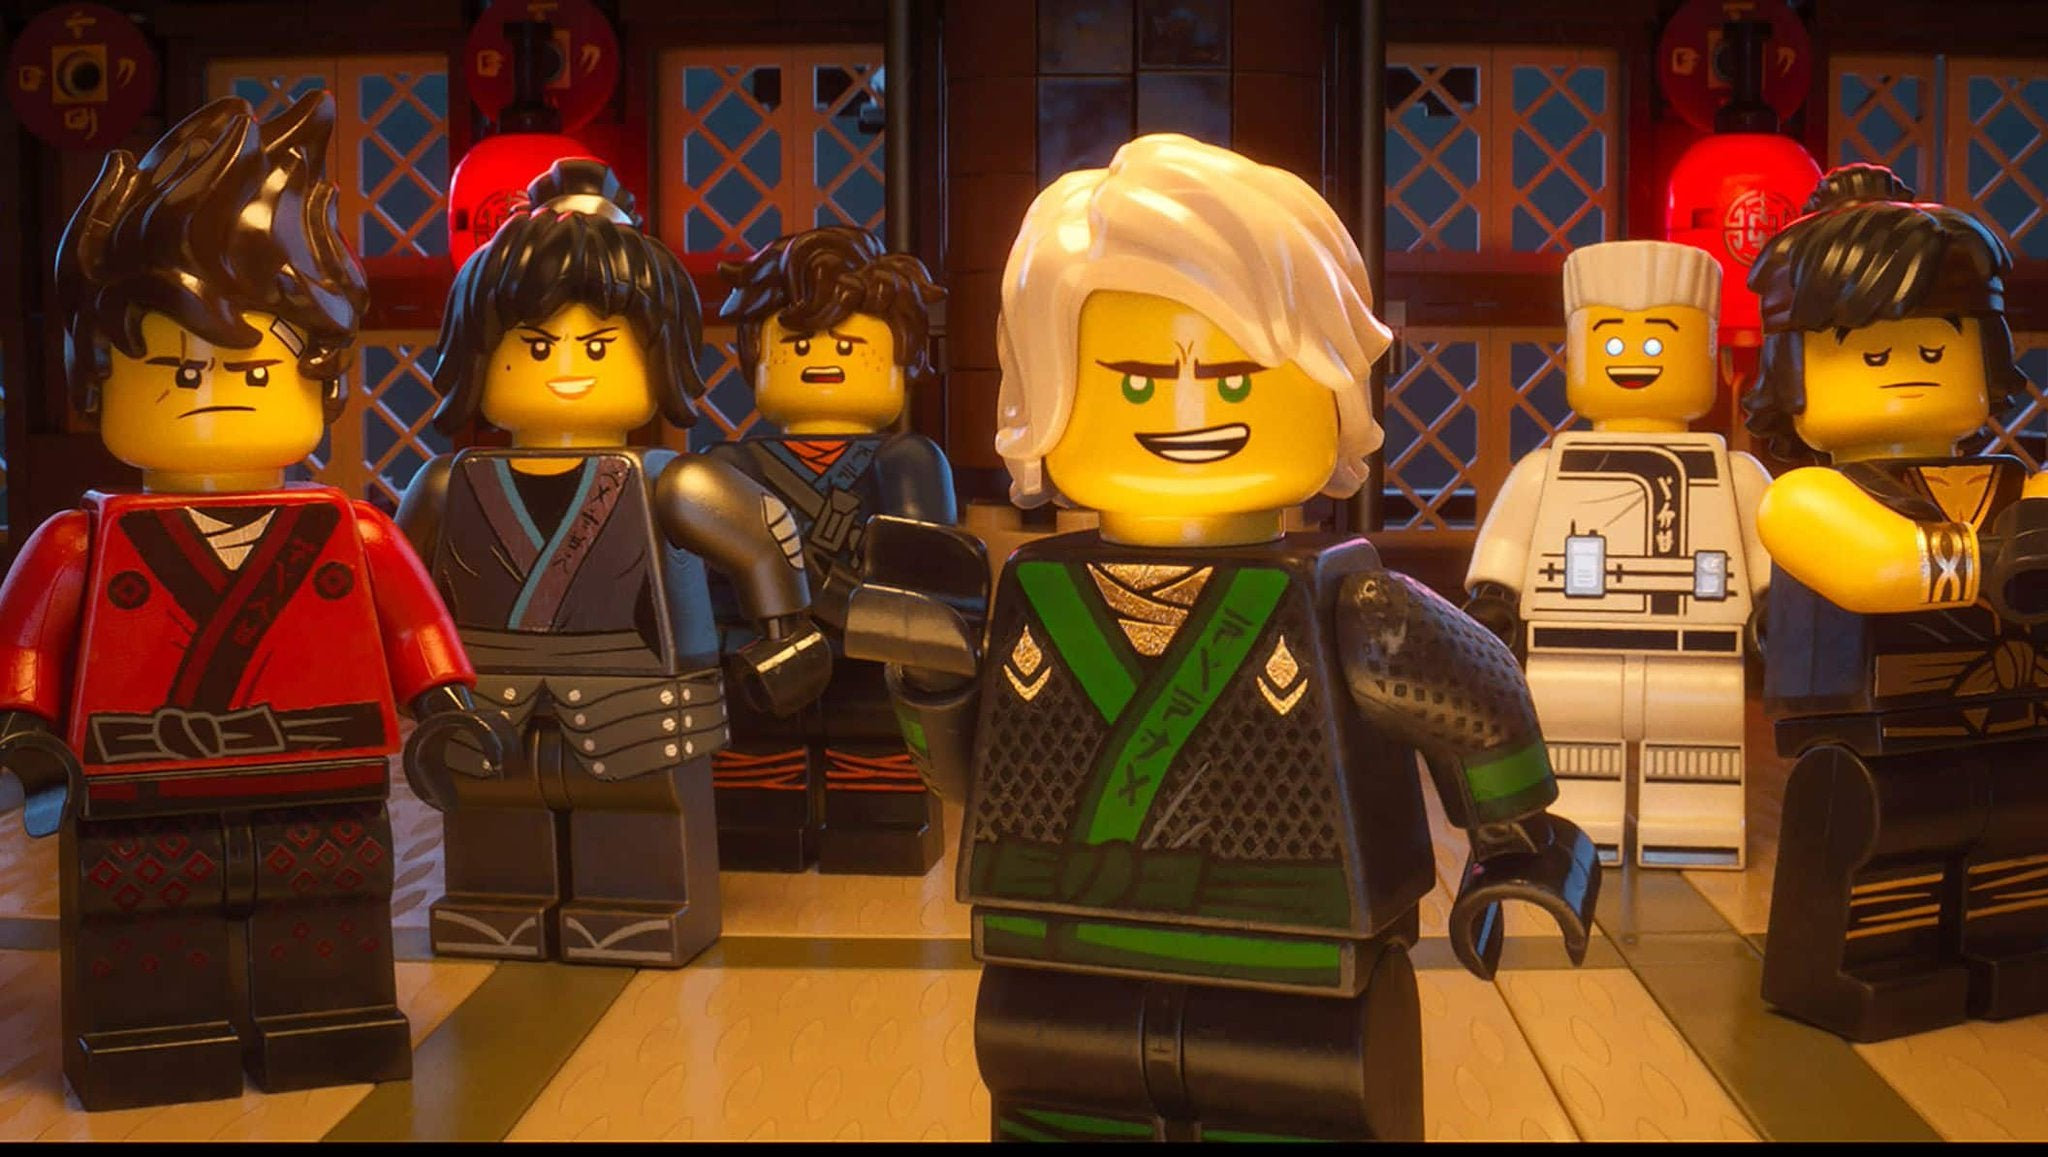 Ninjas Assemble In New Images From The LEGO Ninjago Movie